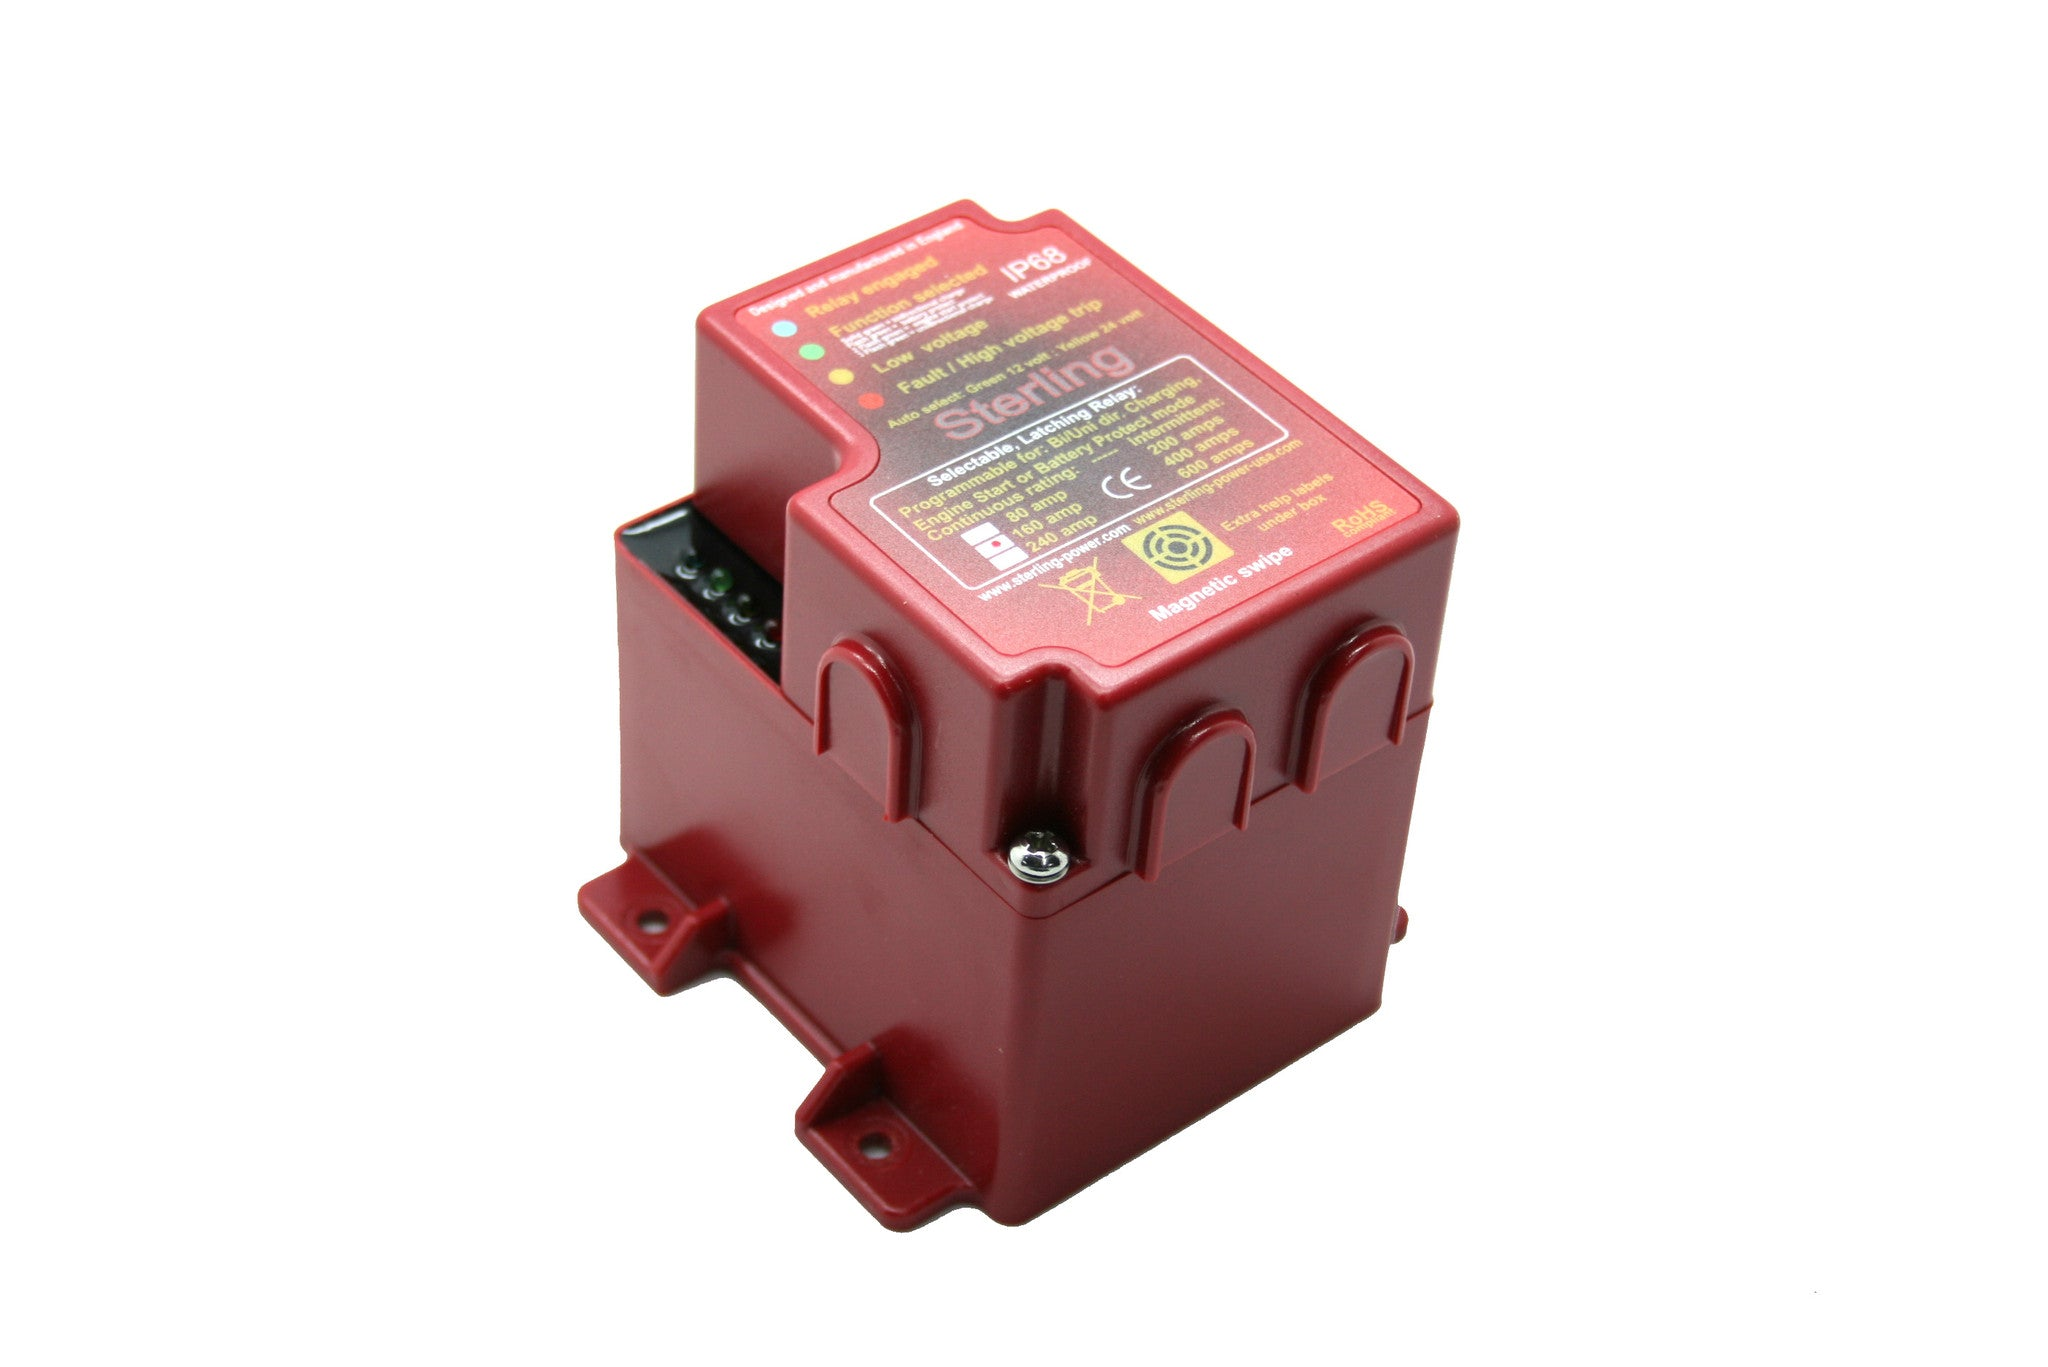 Latching Relay Pro Latch R Sterling Power Products 80 Amp Fuse Box